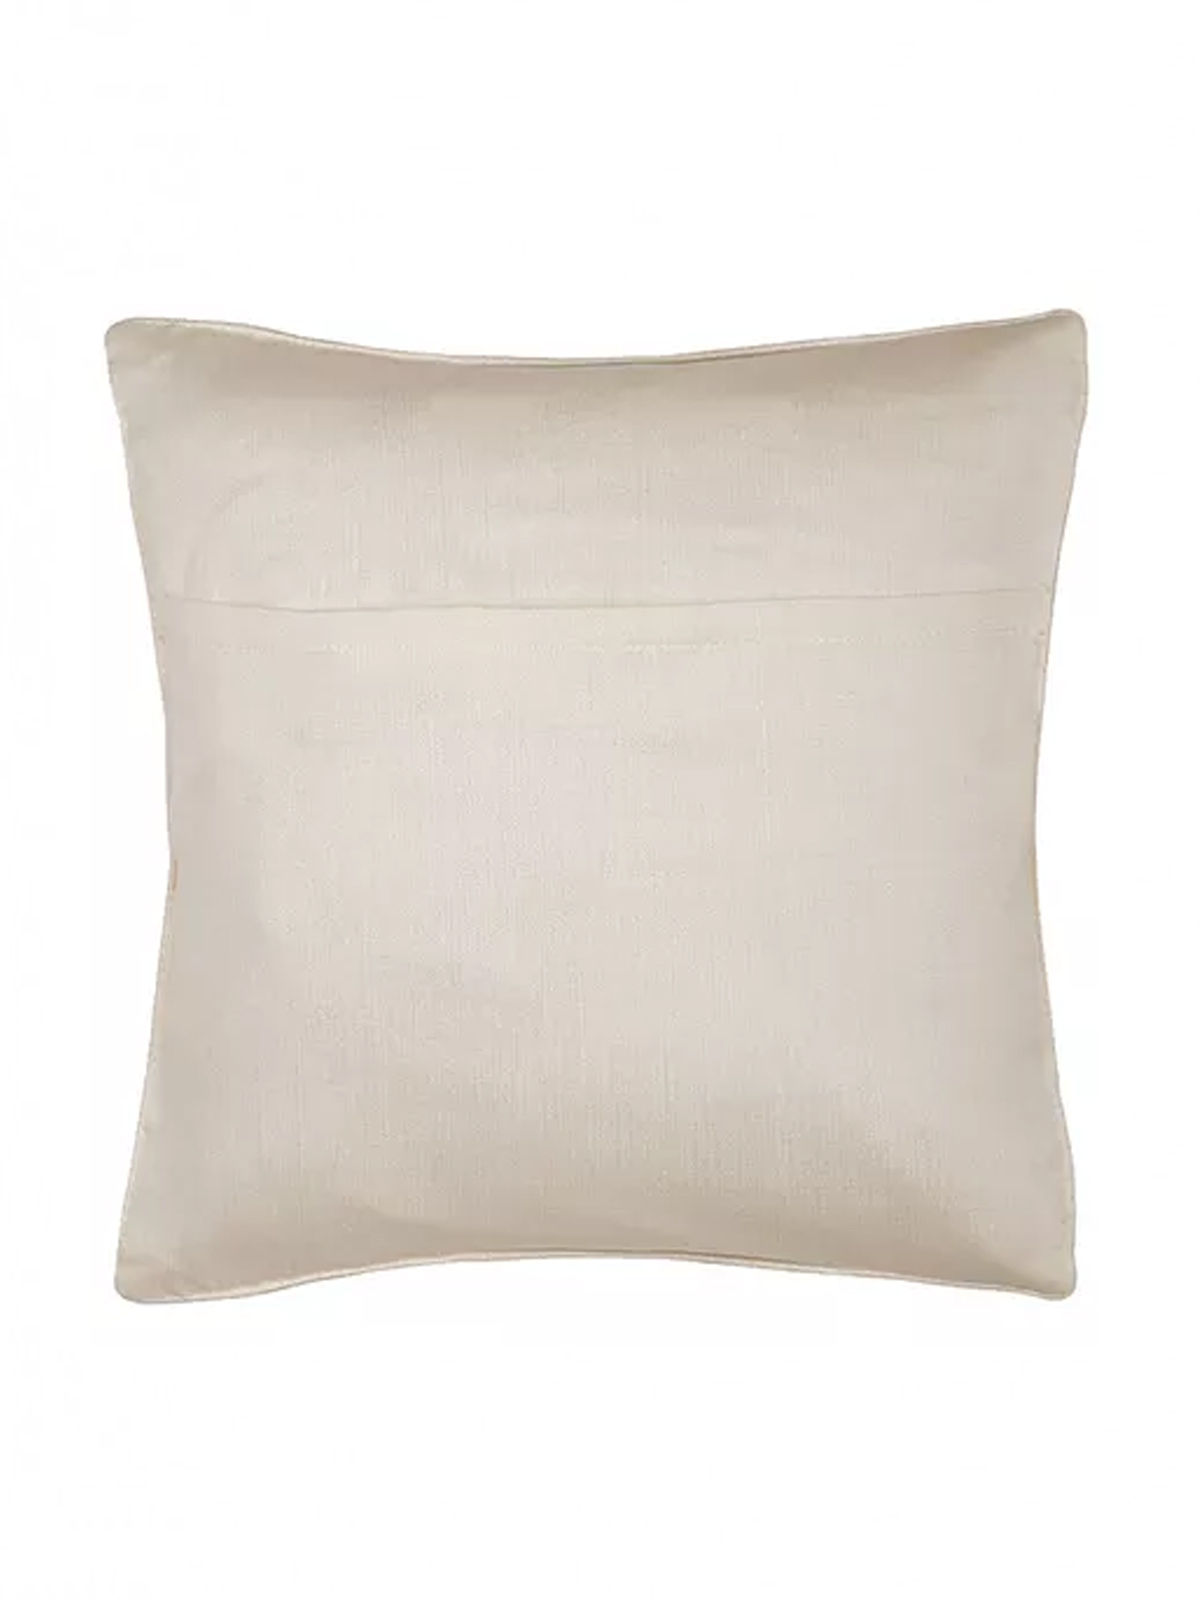 White-pink Embroidered Silk Cushion Cover with Marigold Motif